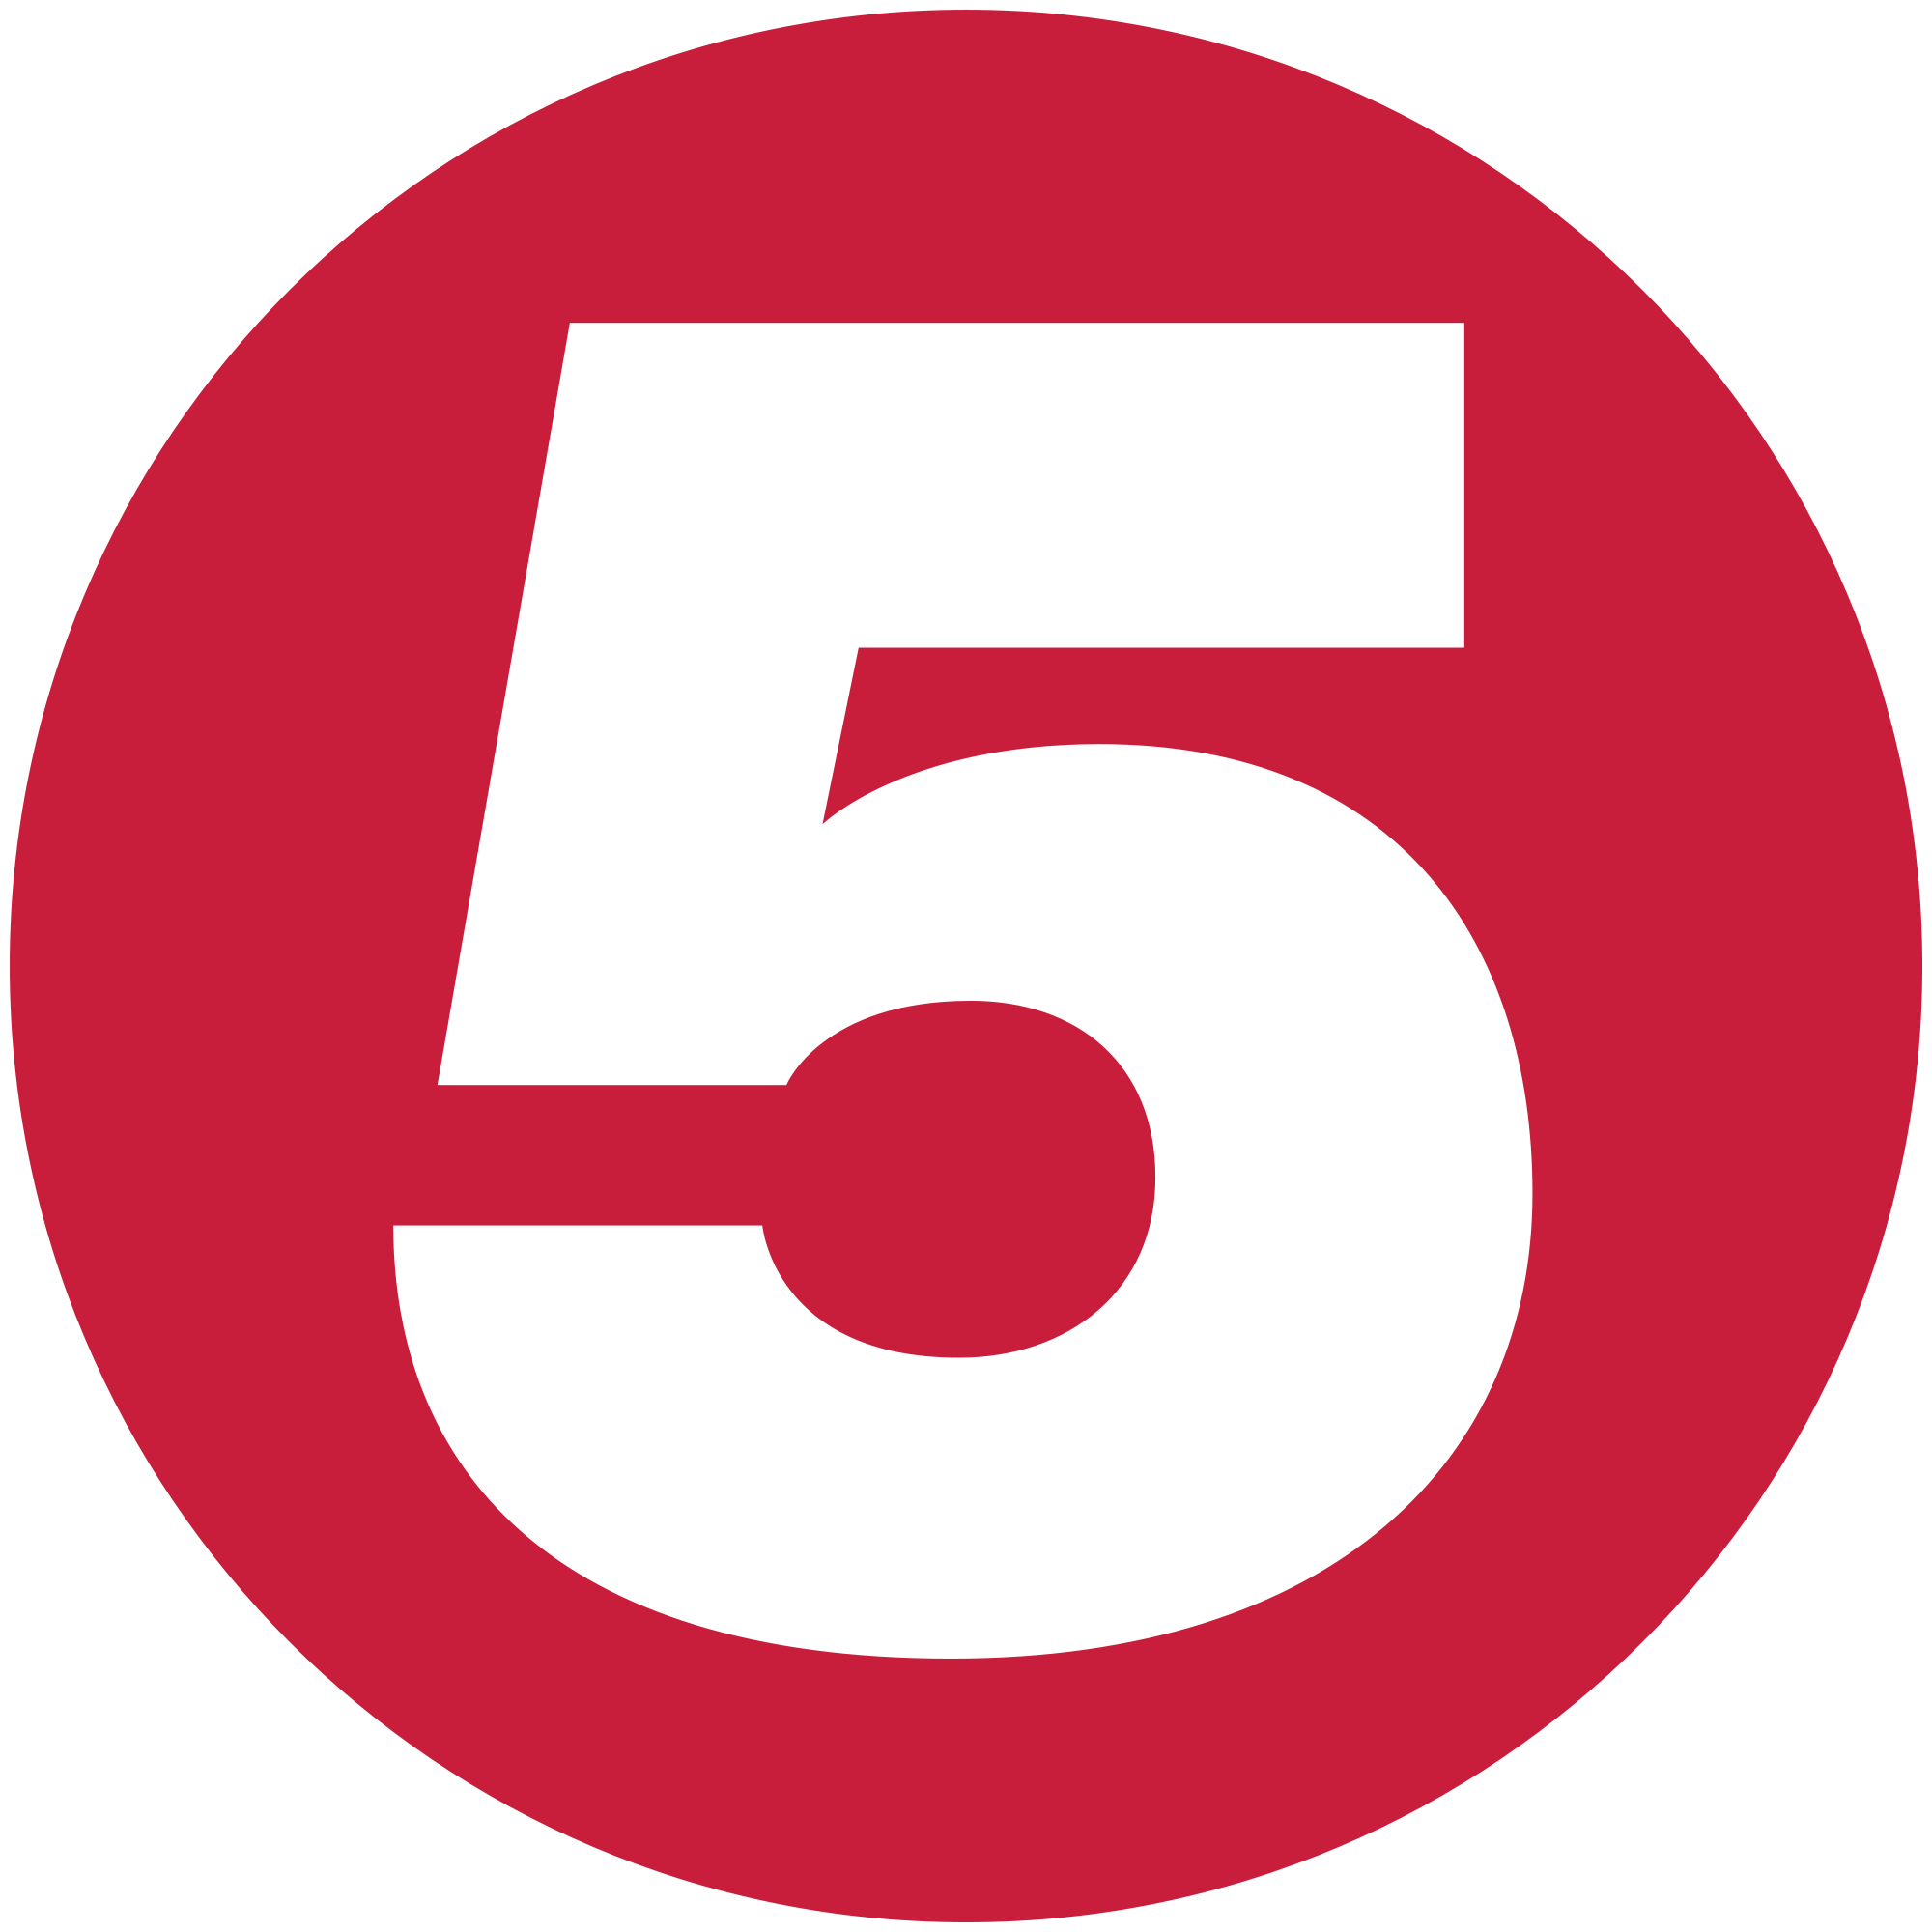 external image Channel_5_logo_2011.png